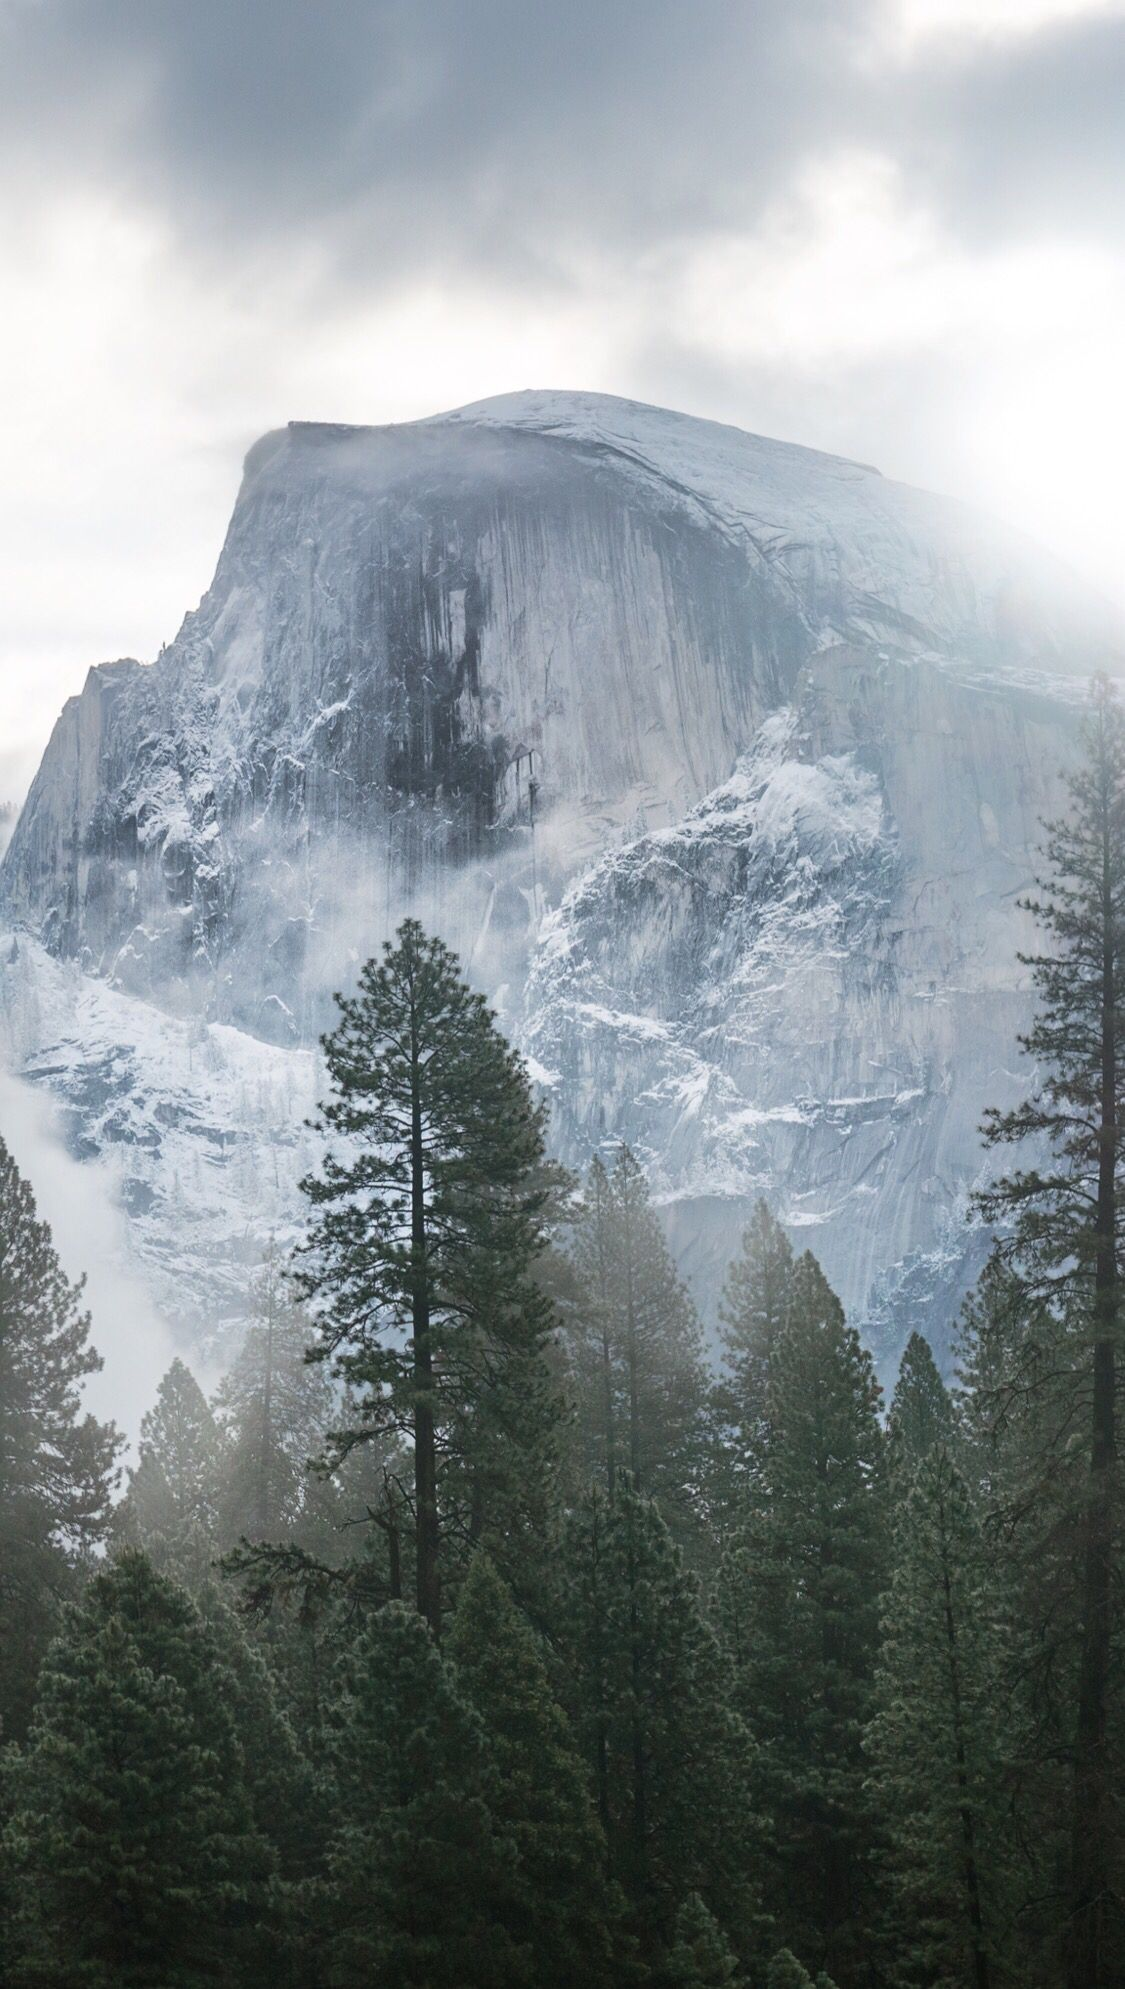 Apple Yosemite Wallpaper IPhone 6 plus «i just want you to